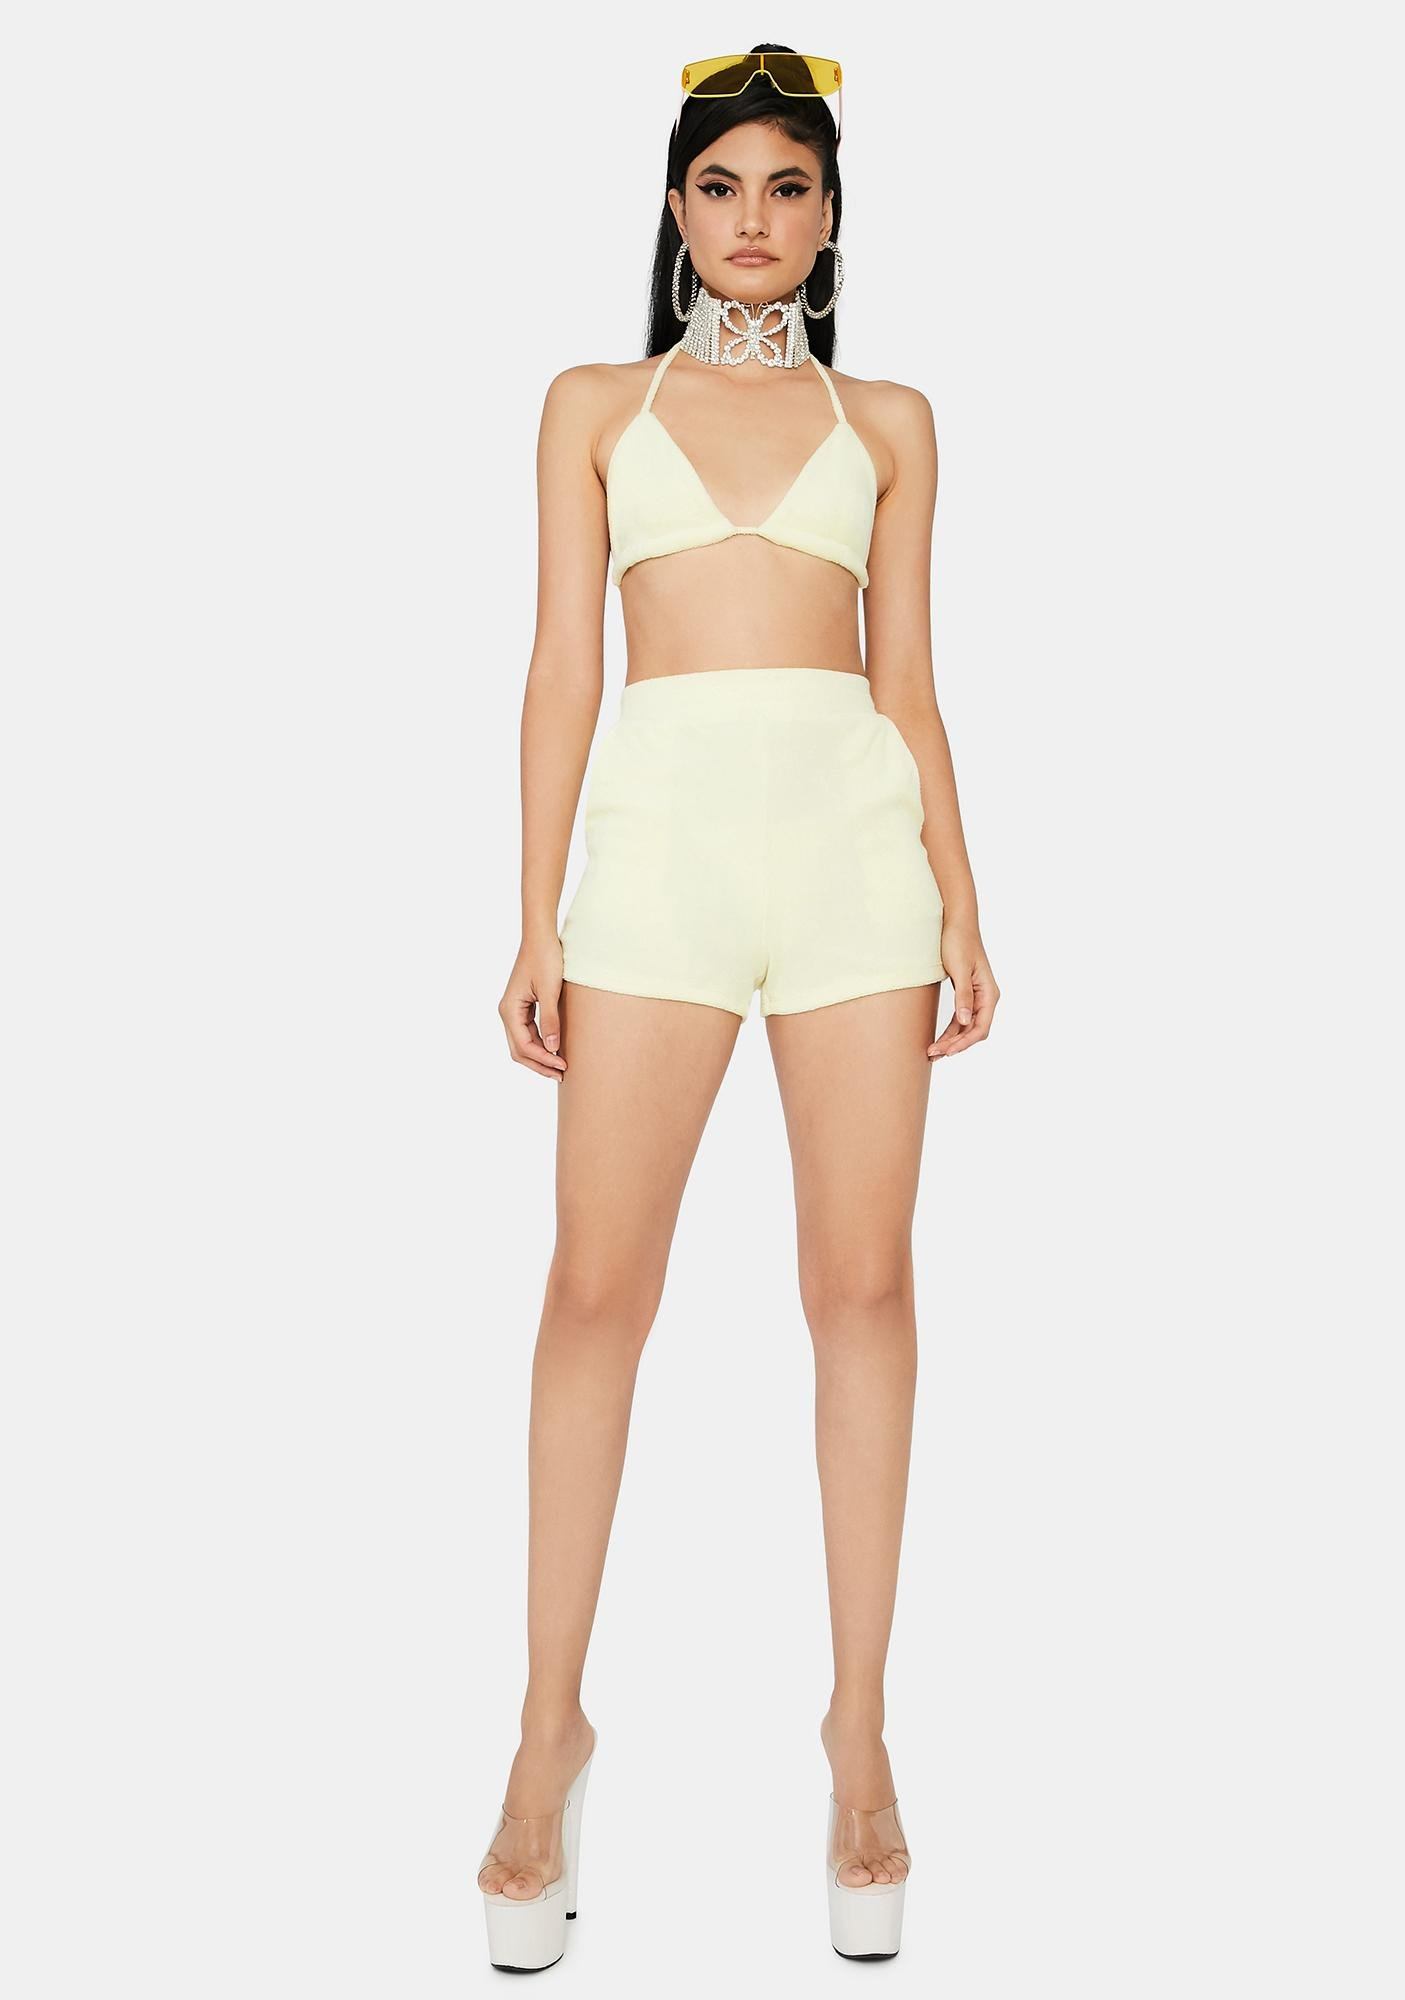 Poolside Heiress Terry Shorts Set